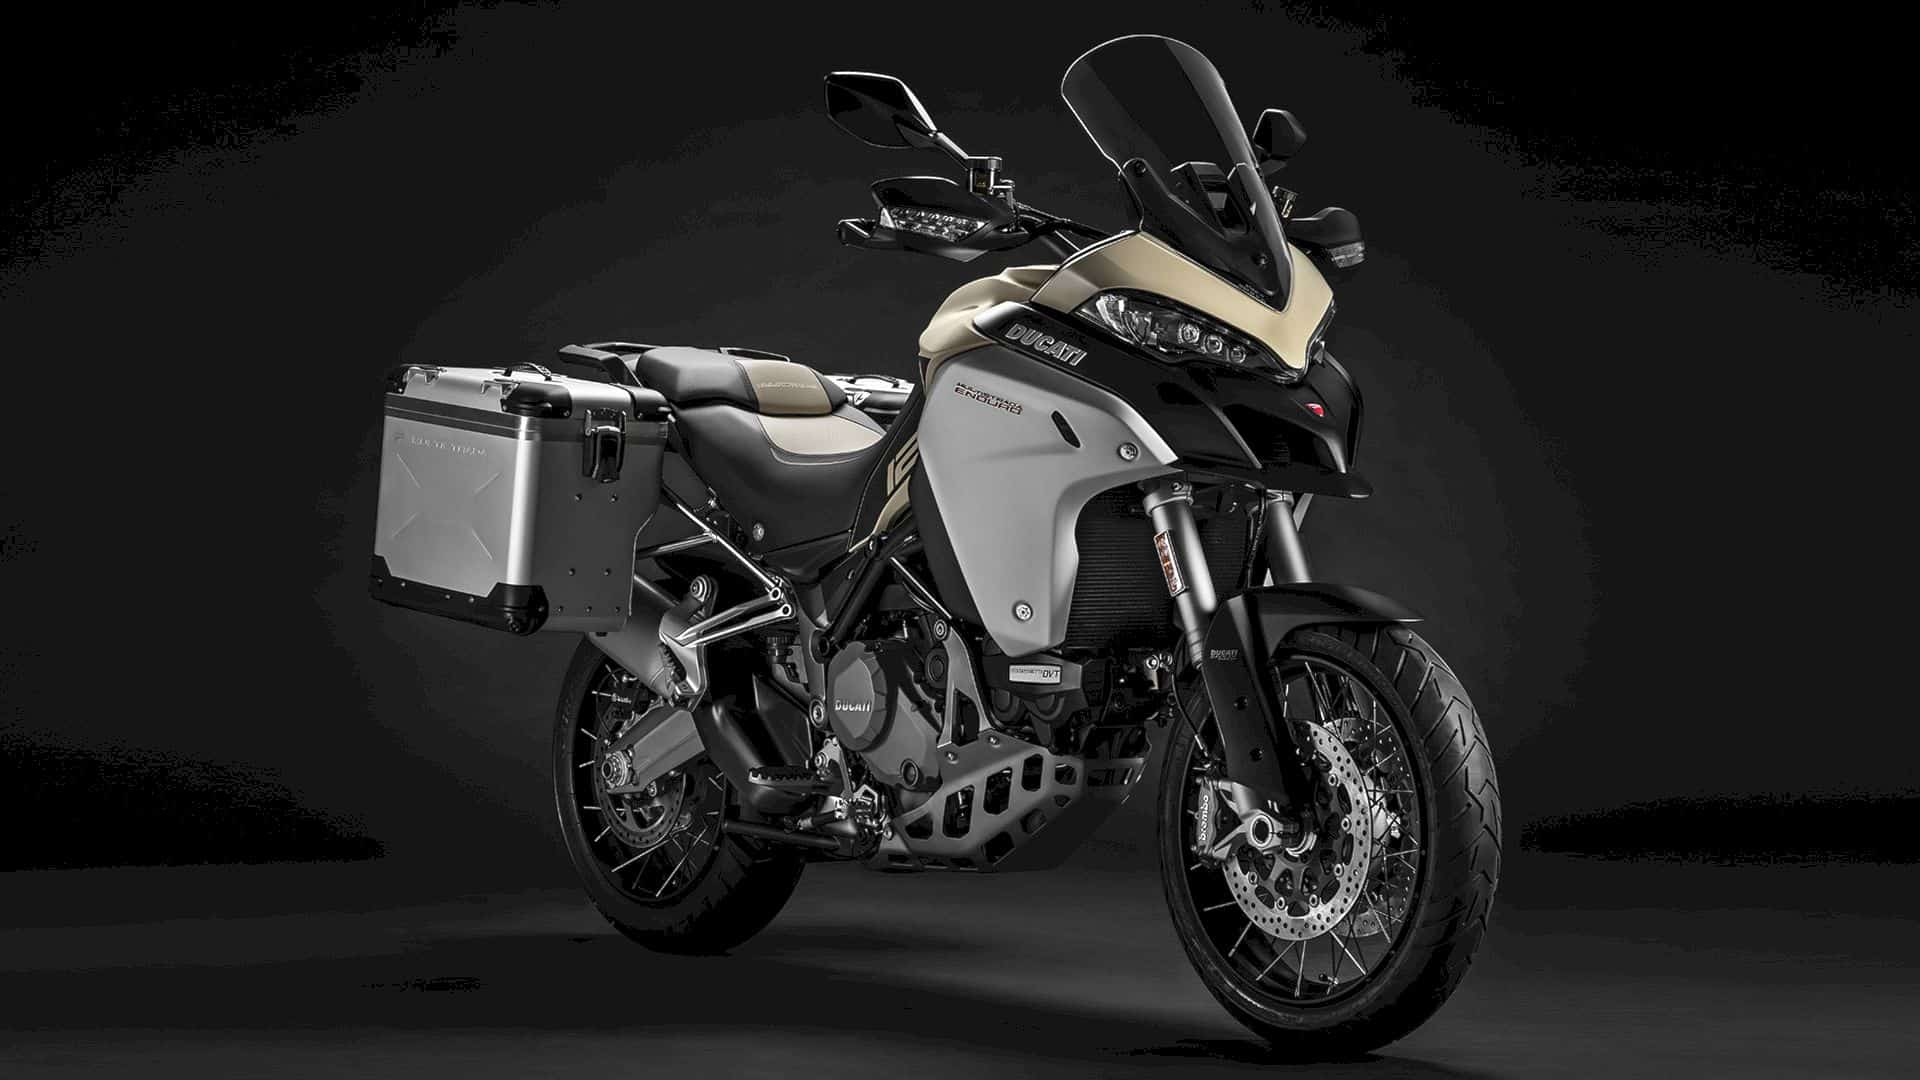 The New Ducati Multistrada 1260 Enduro: Goes Beyond the Boundaries